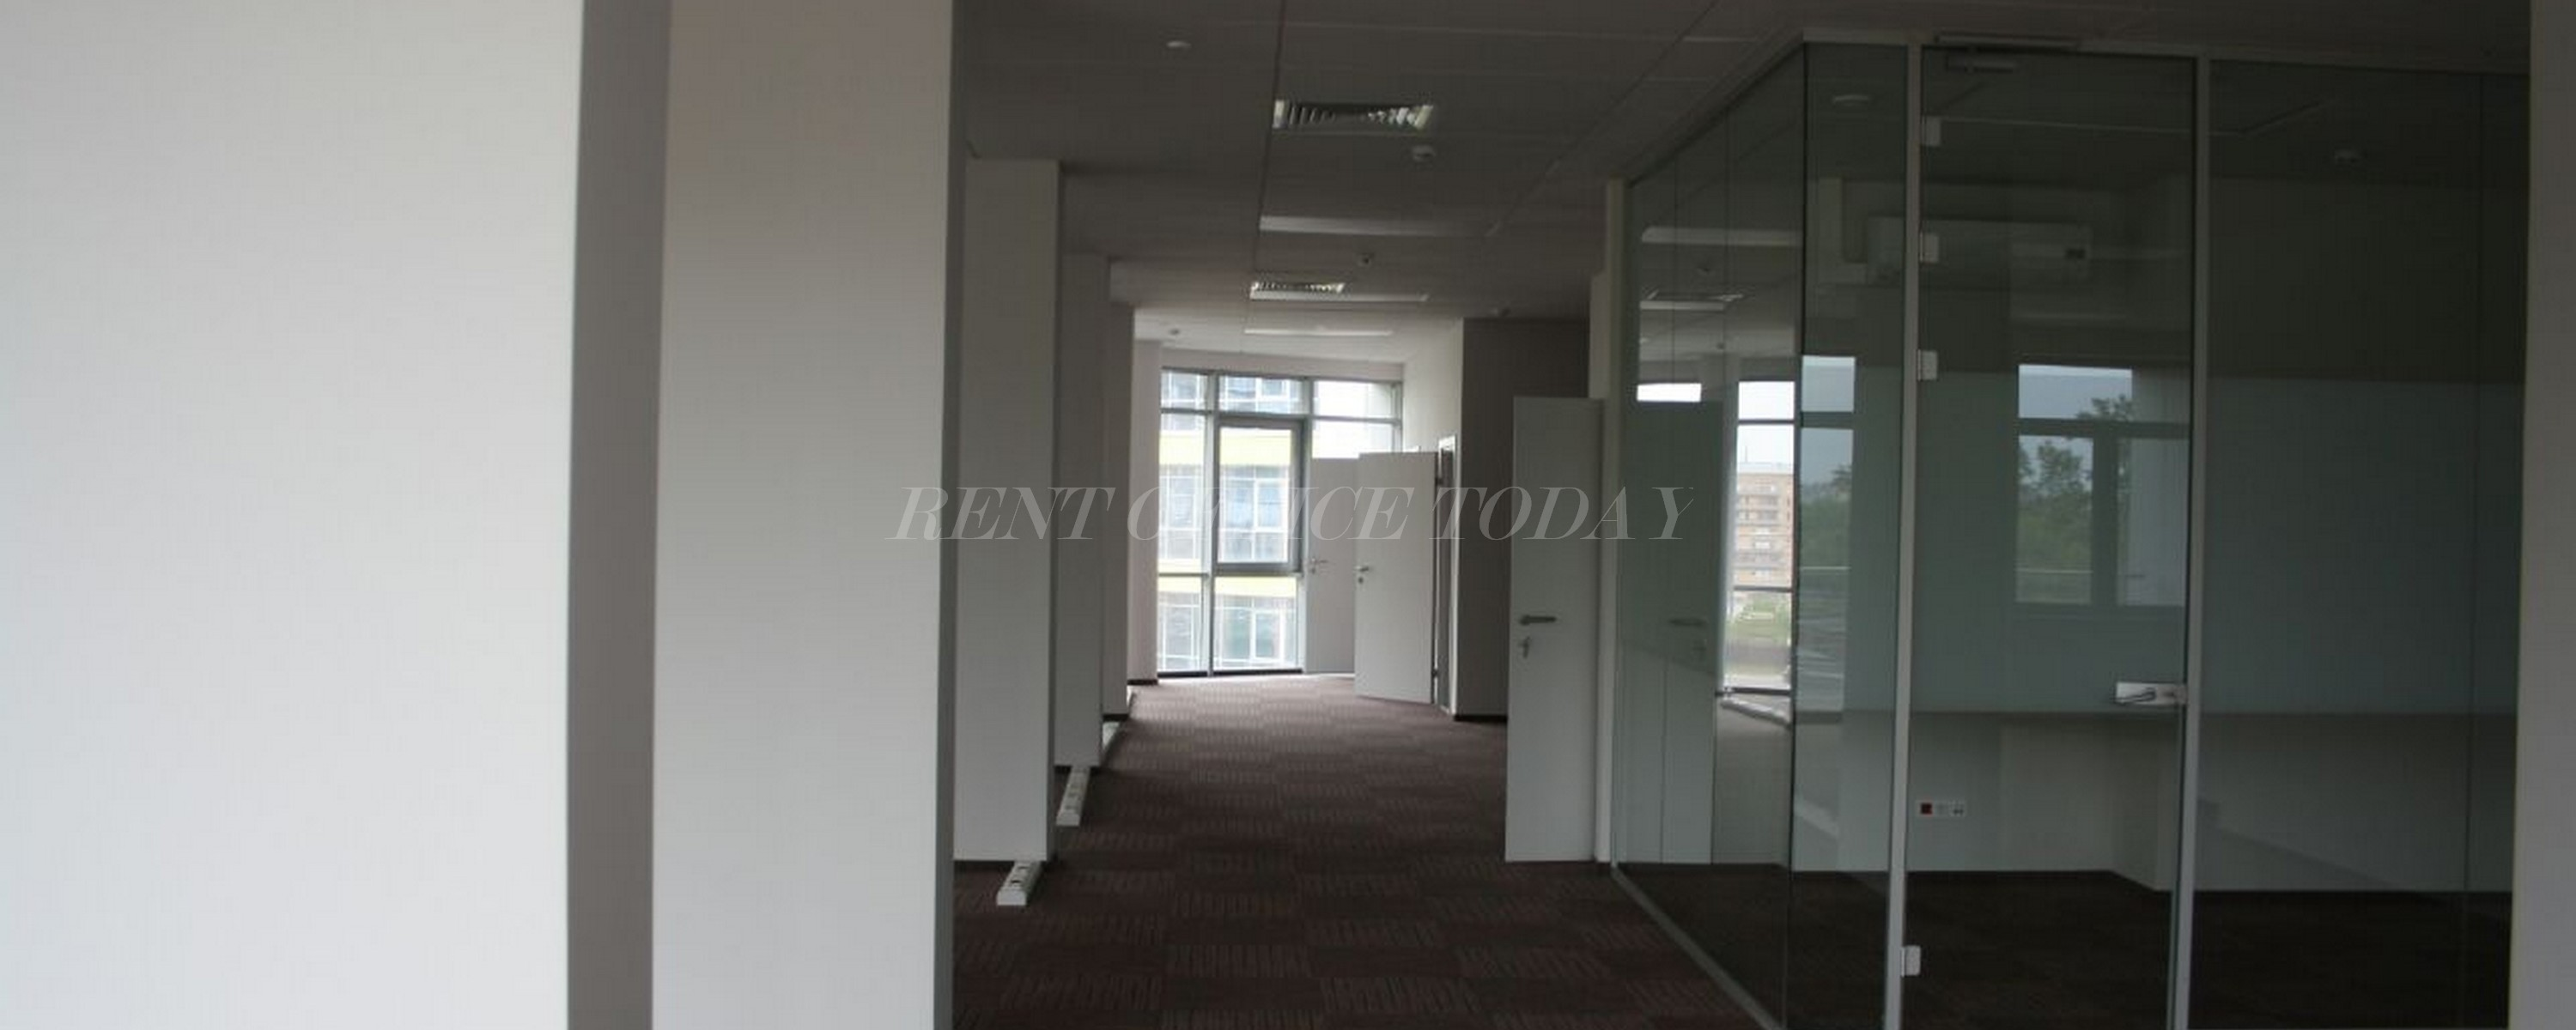 office rent poklonka place-27